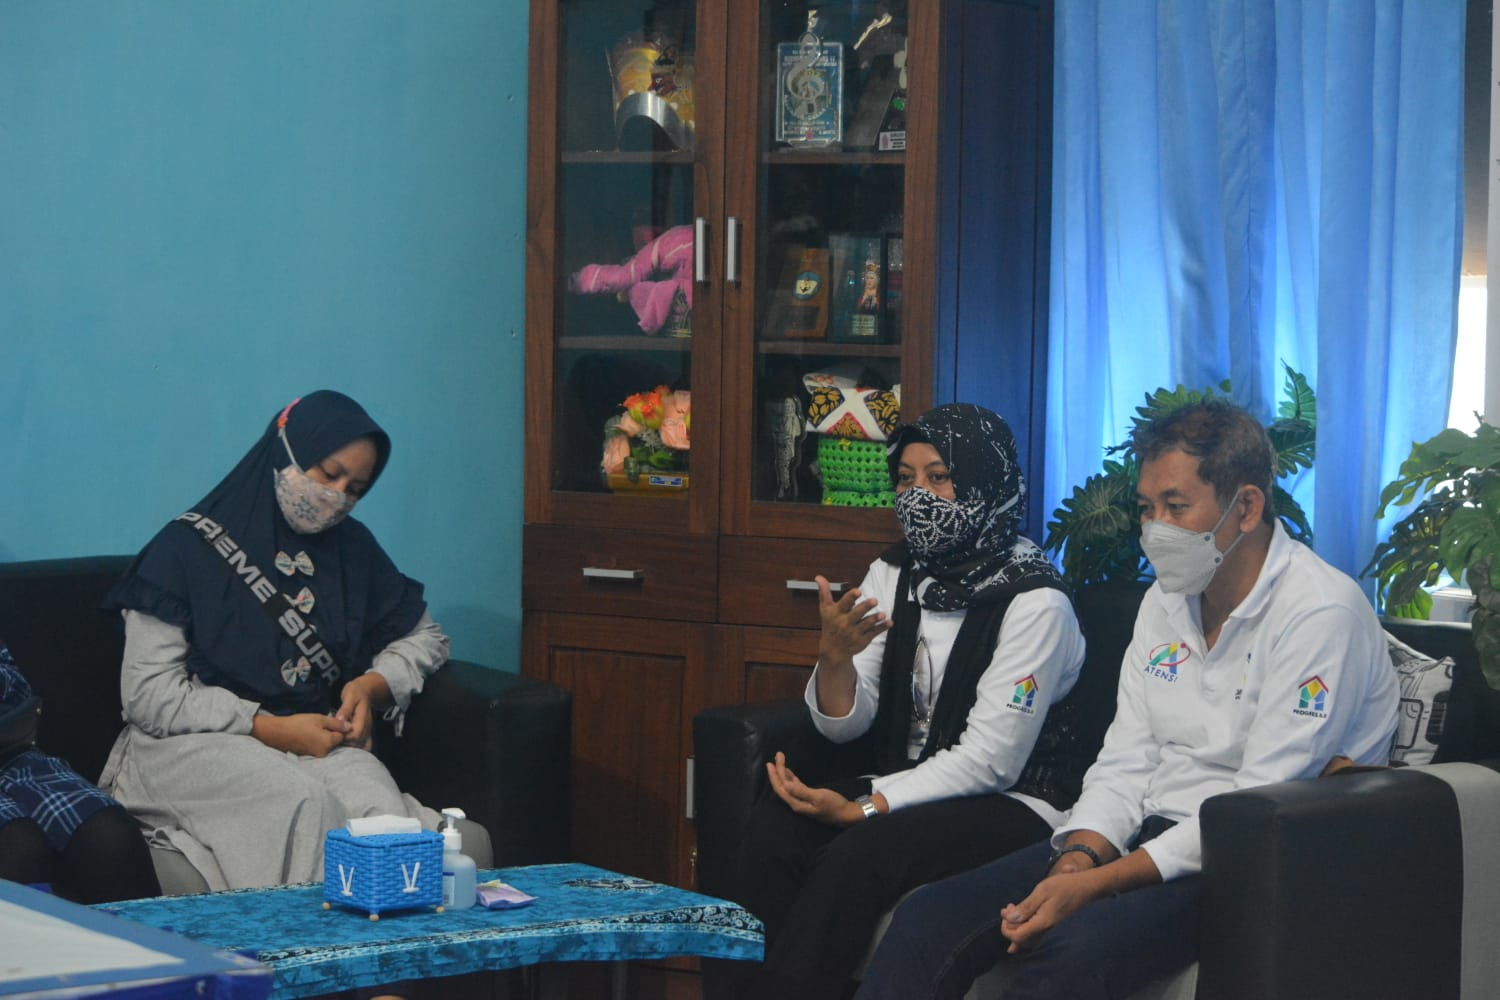 The Ministry of Social Affairs Provides Strengthening and Psychosocial Support for the Families of ABK KRI Nanggala 402